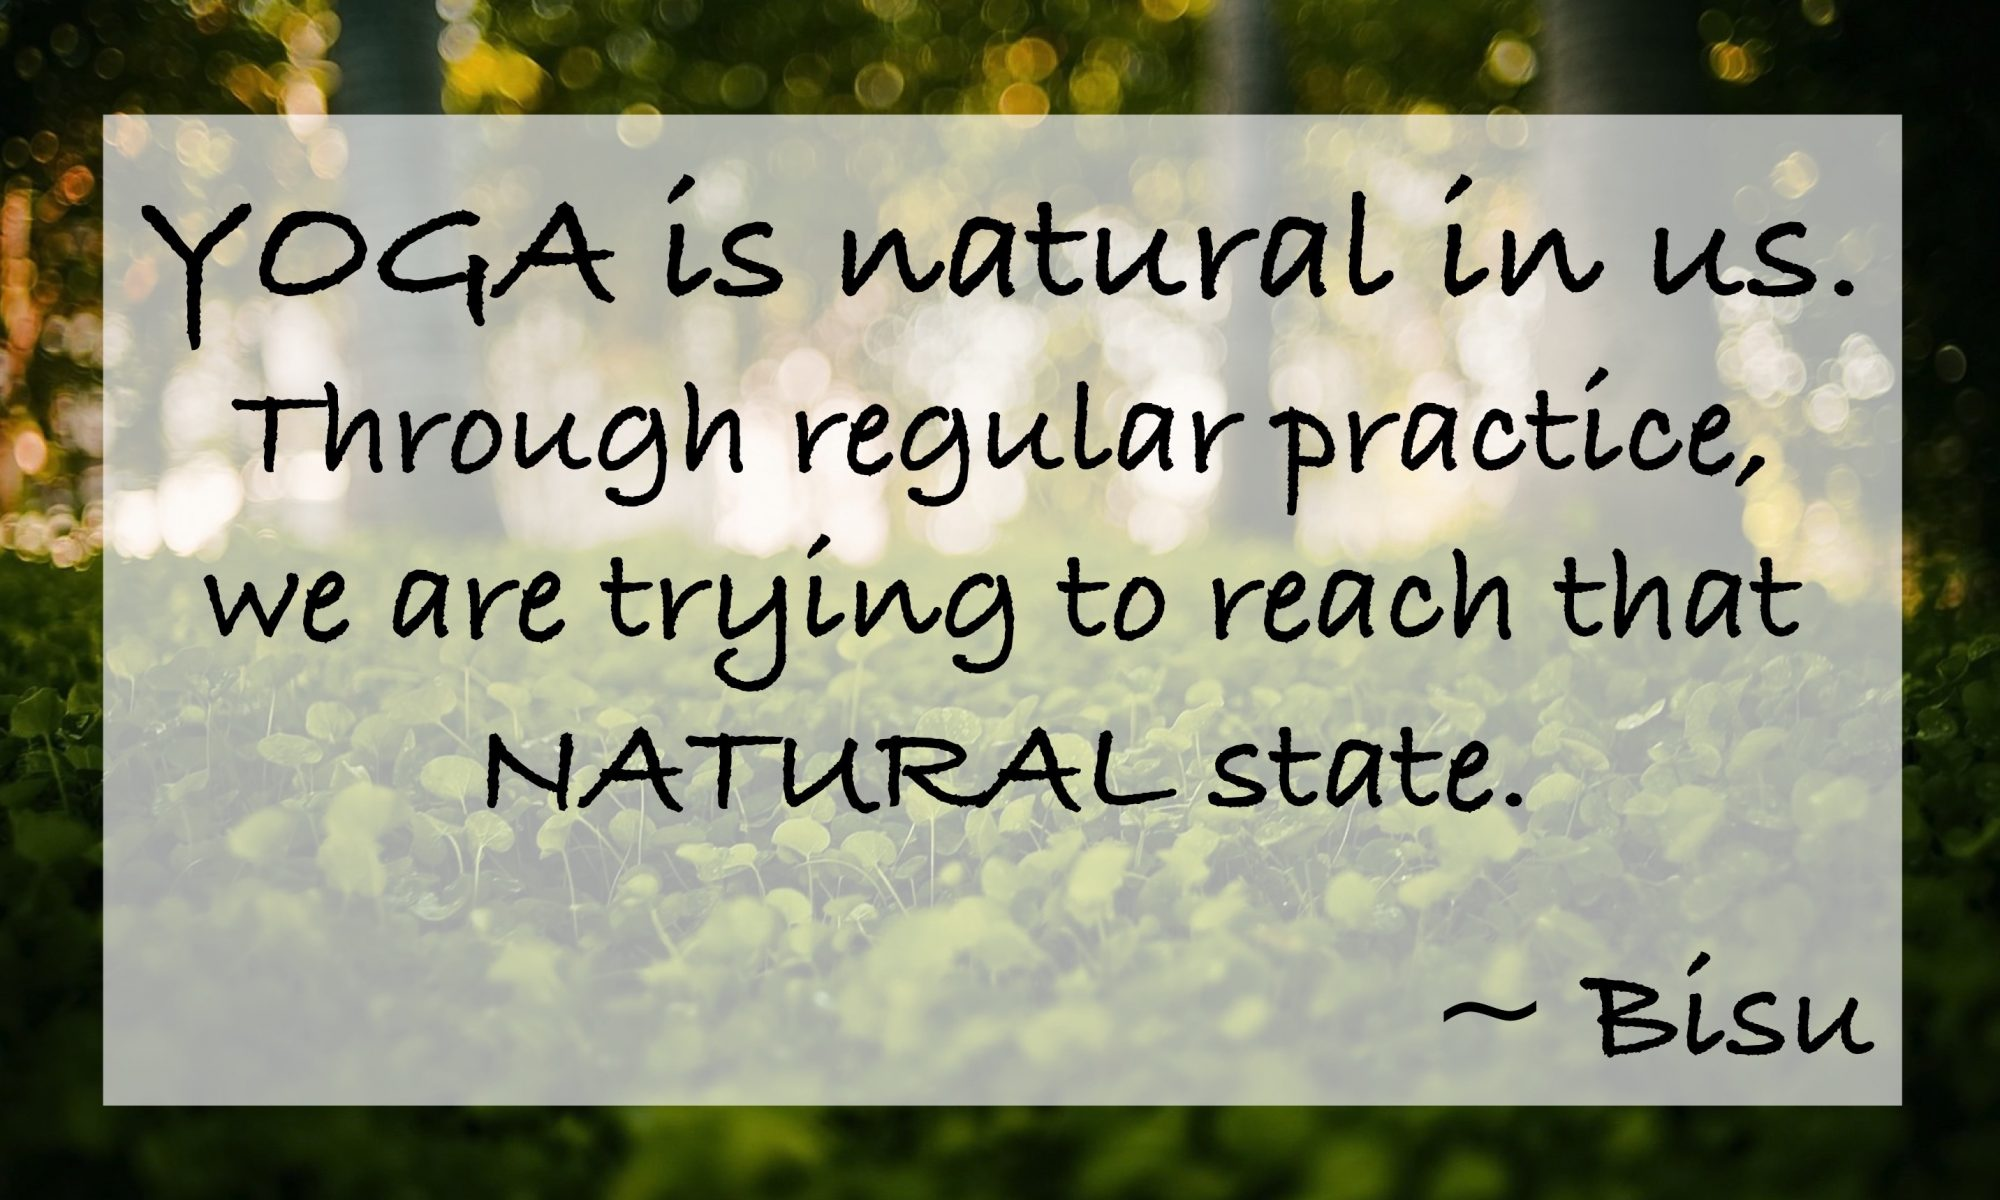 Yoga is natural in us. Through regular practice, we are trying to reach that natural state. - Bisu